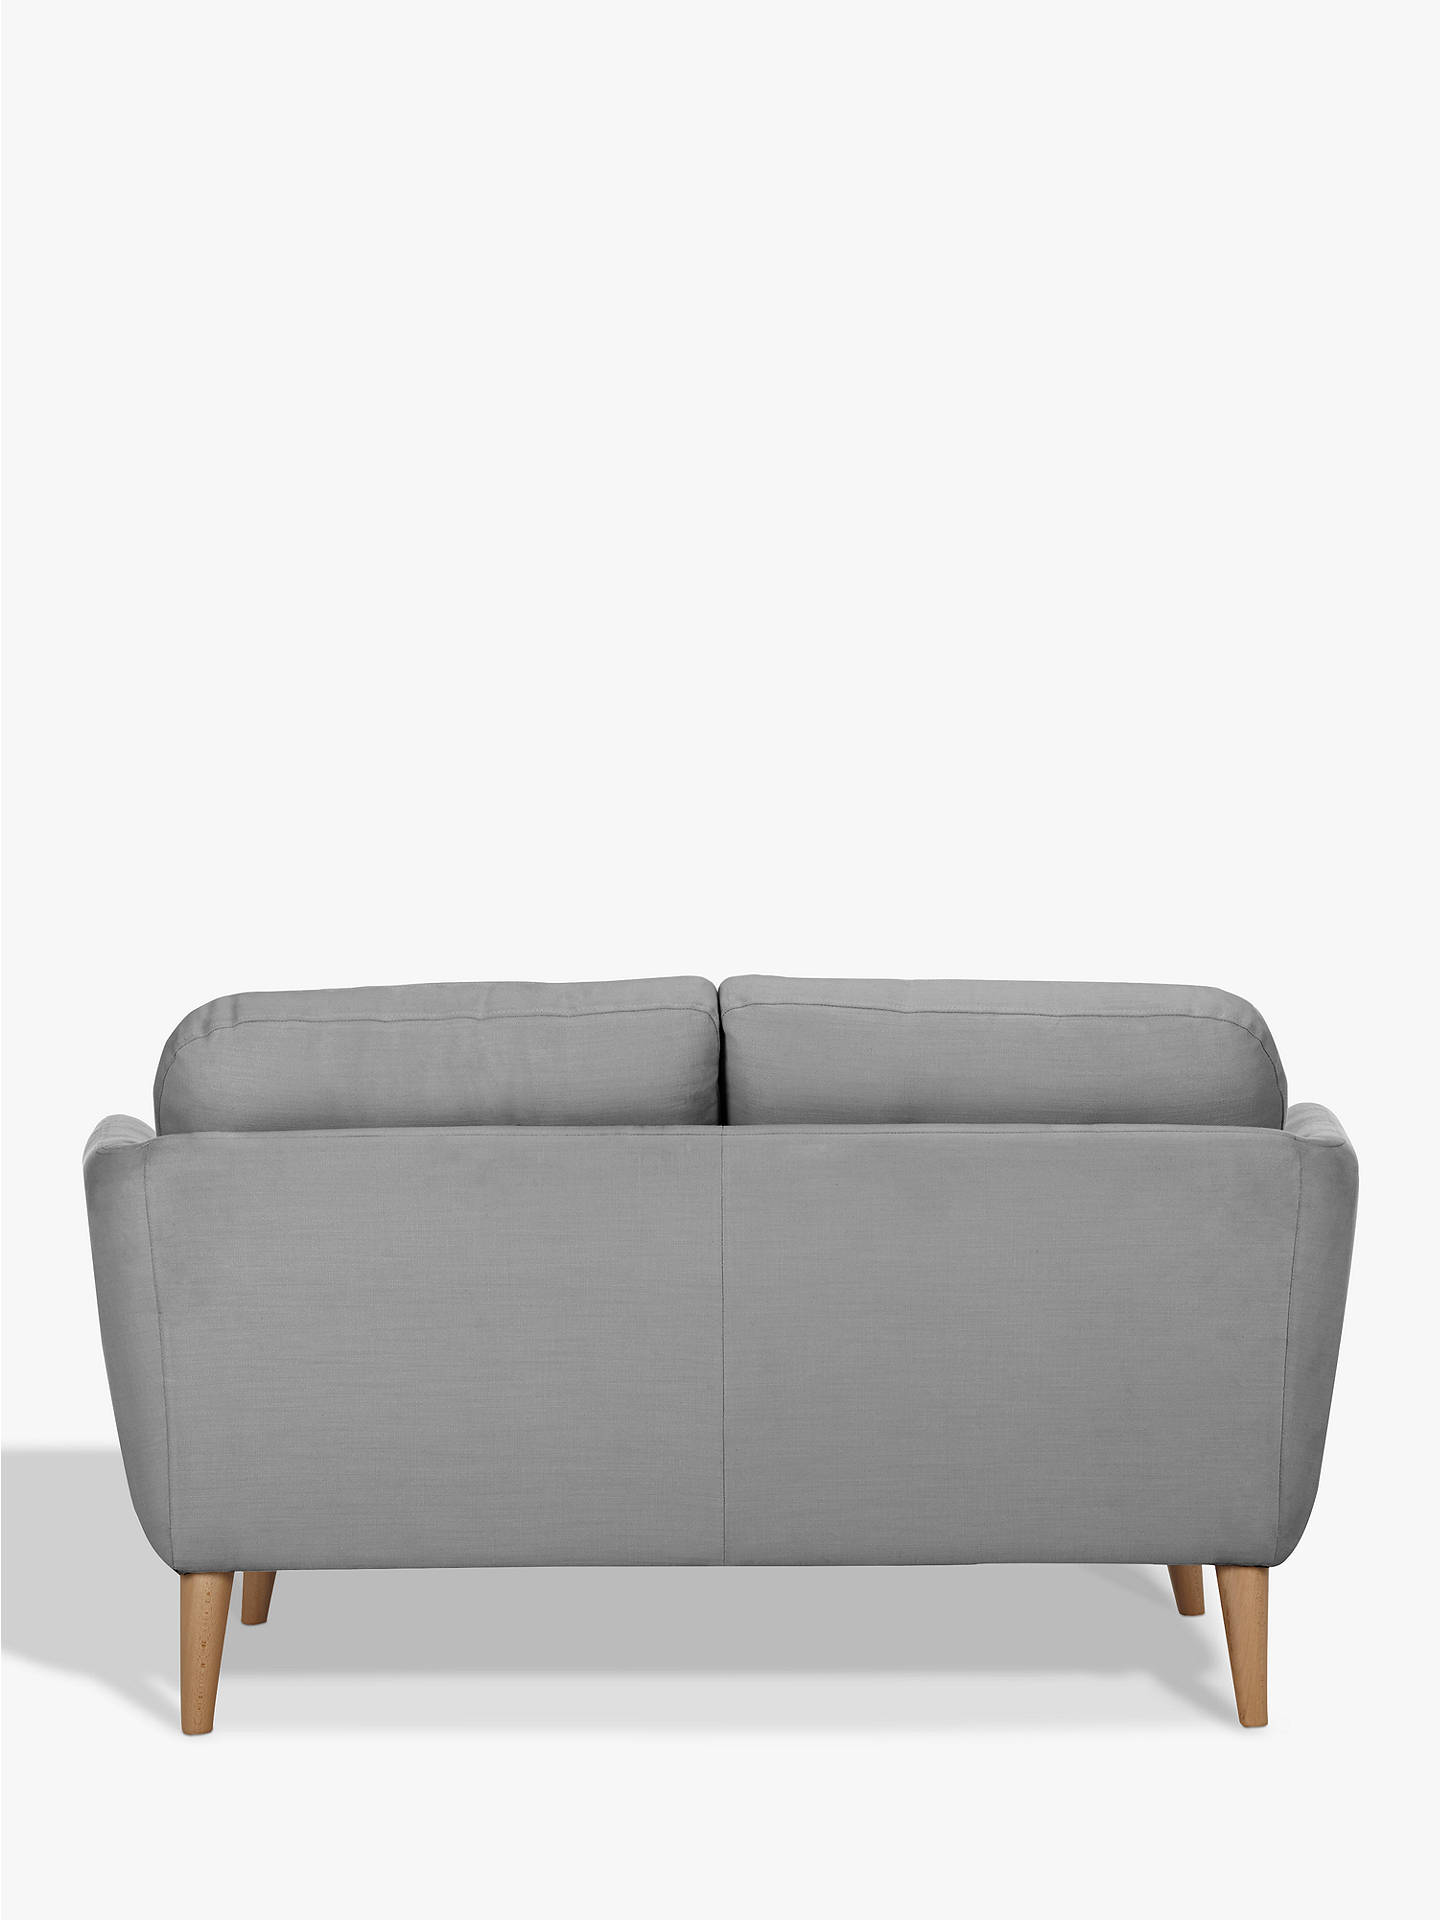 Buy House by John Lewis Arlo Small 2 Seater Sofa, Light Leg, Erin Midnight Online at johnlewis.com